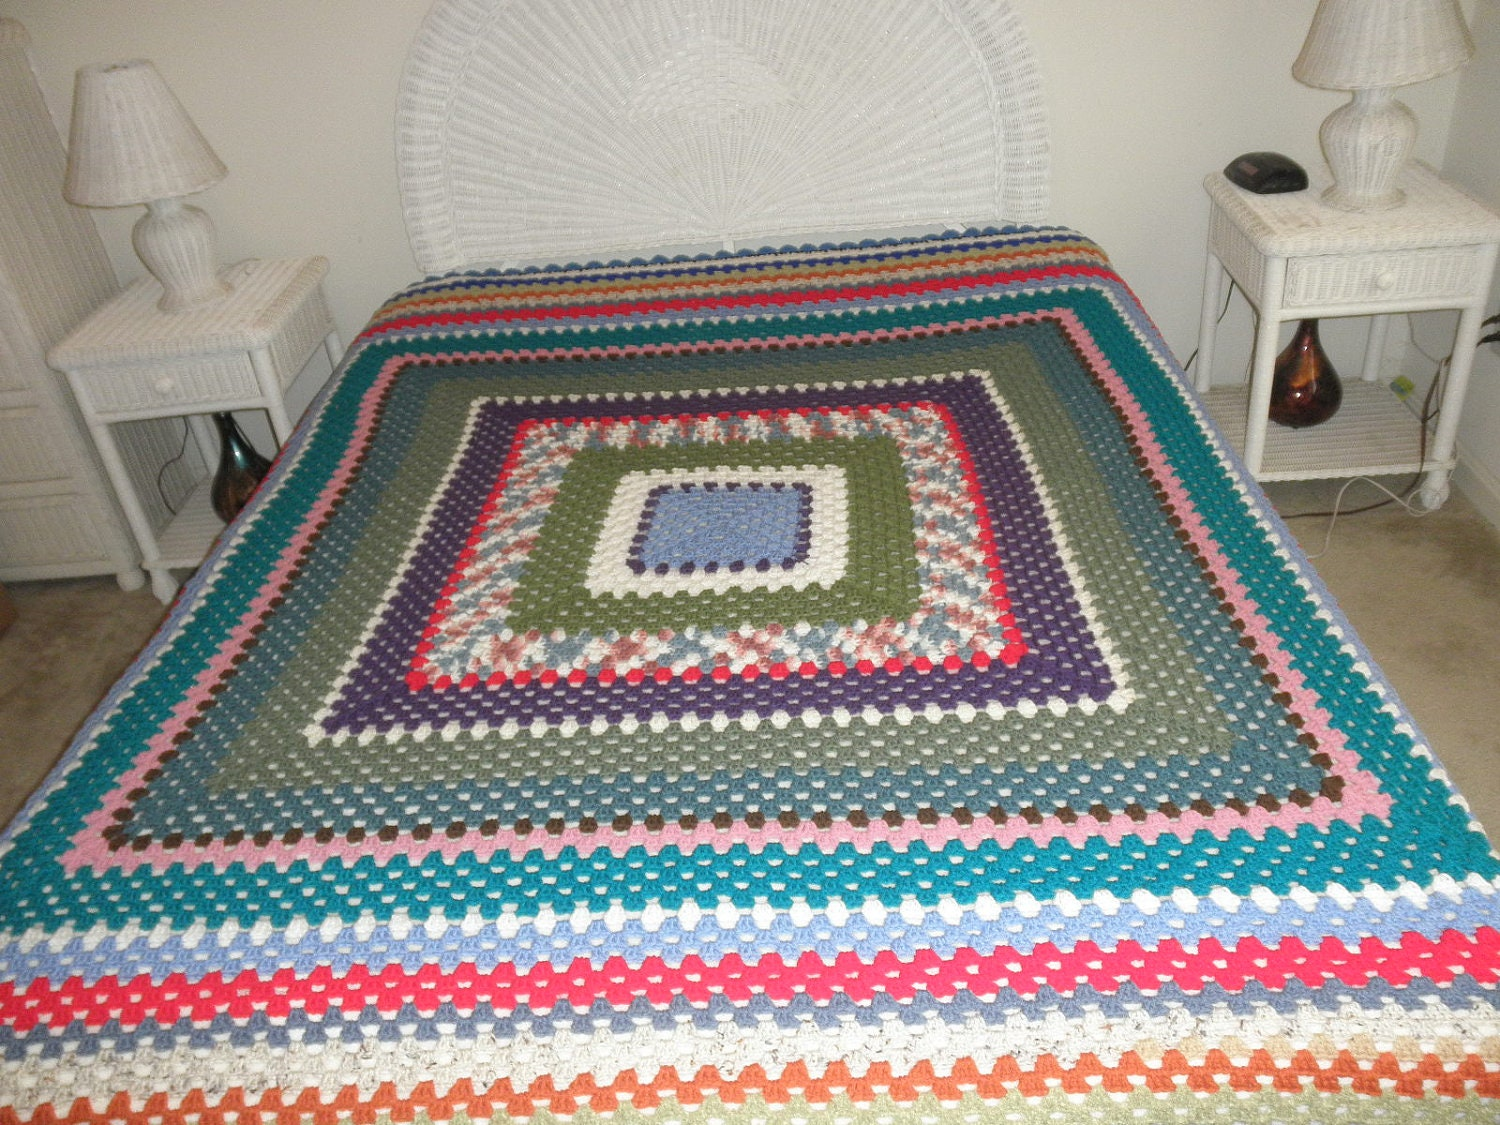 Crochet Pattern For Queen Size Afghan Dancox For